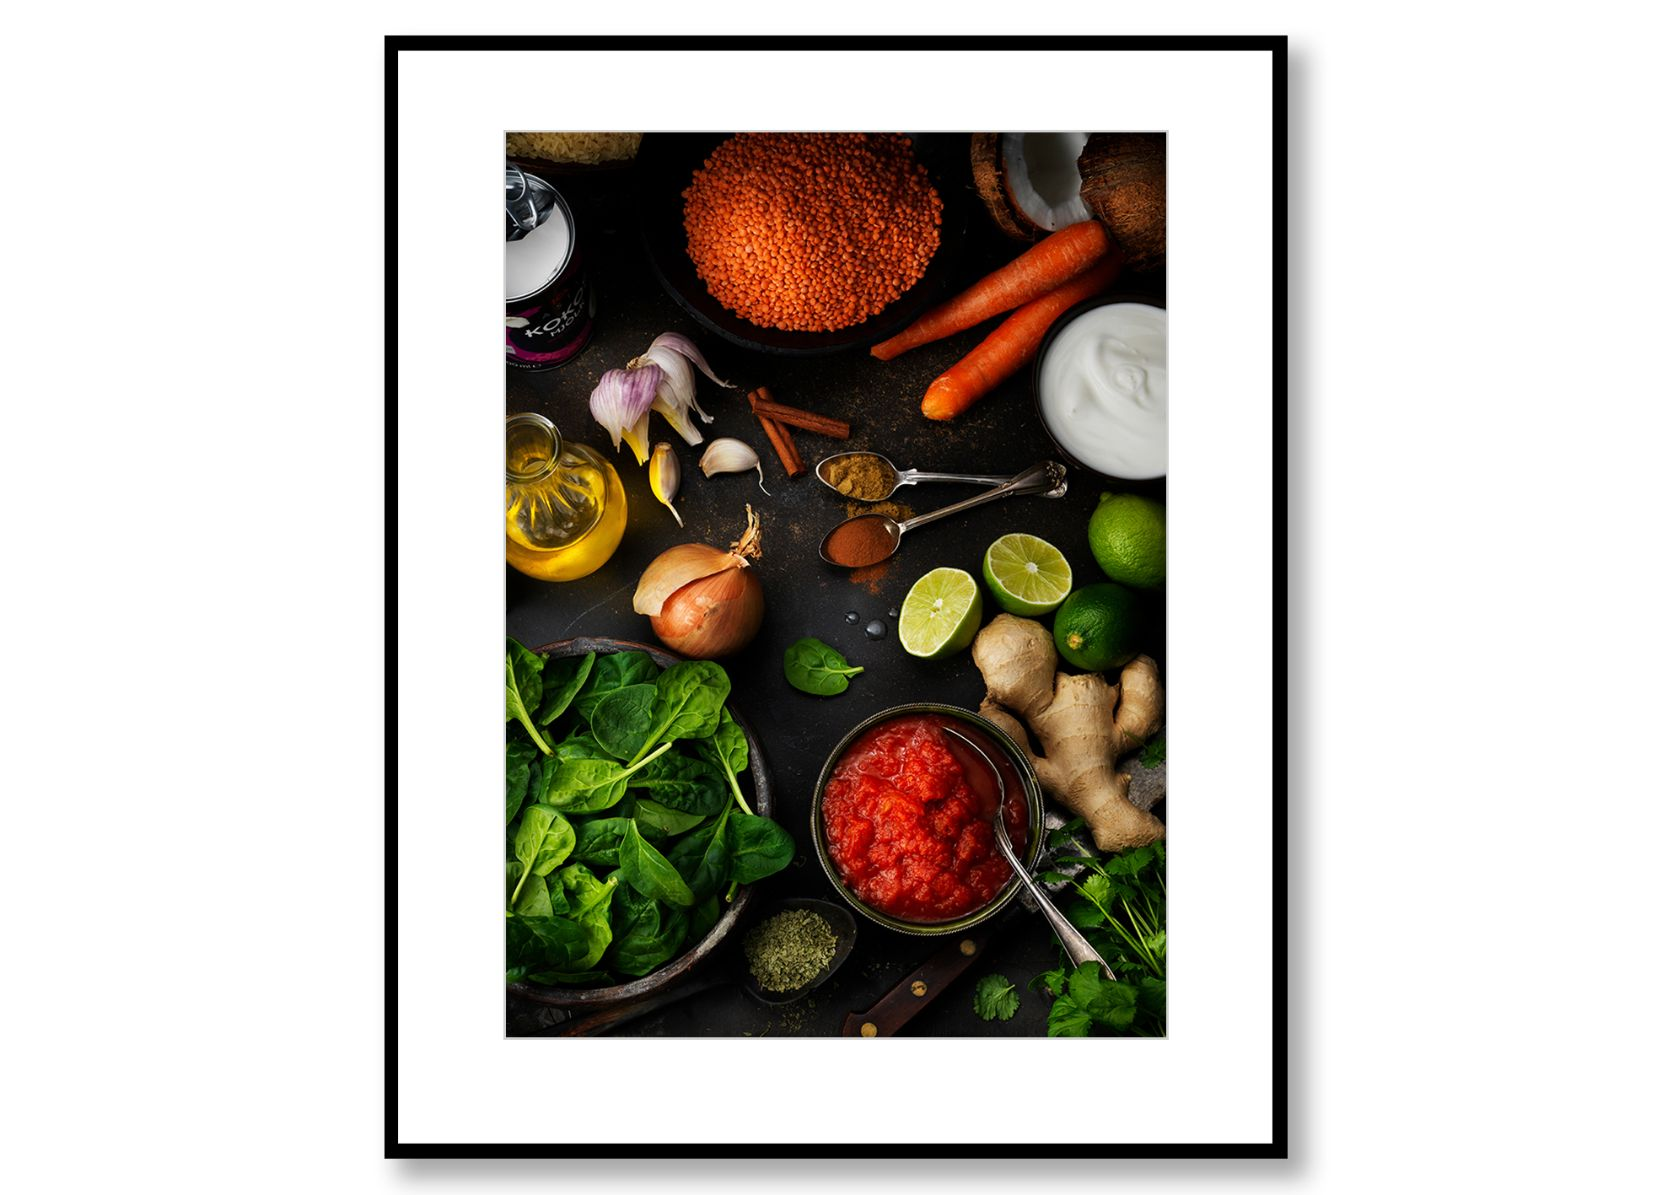 Daal. Food Art. Prints for Sale. Photo by Fredrik Rege